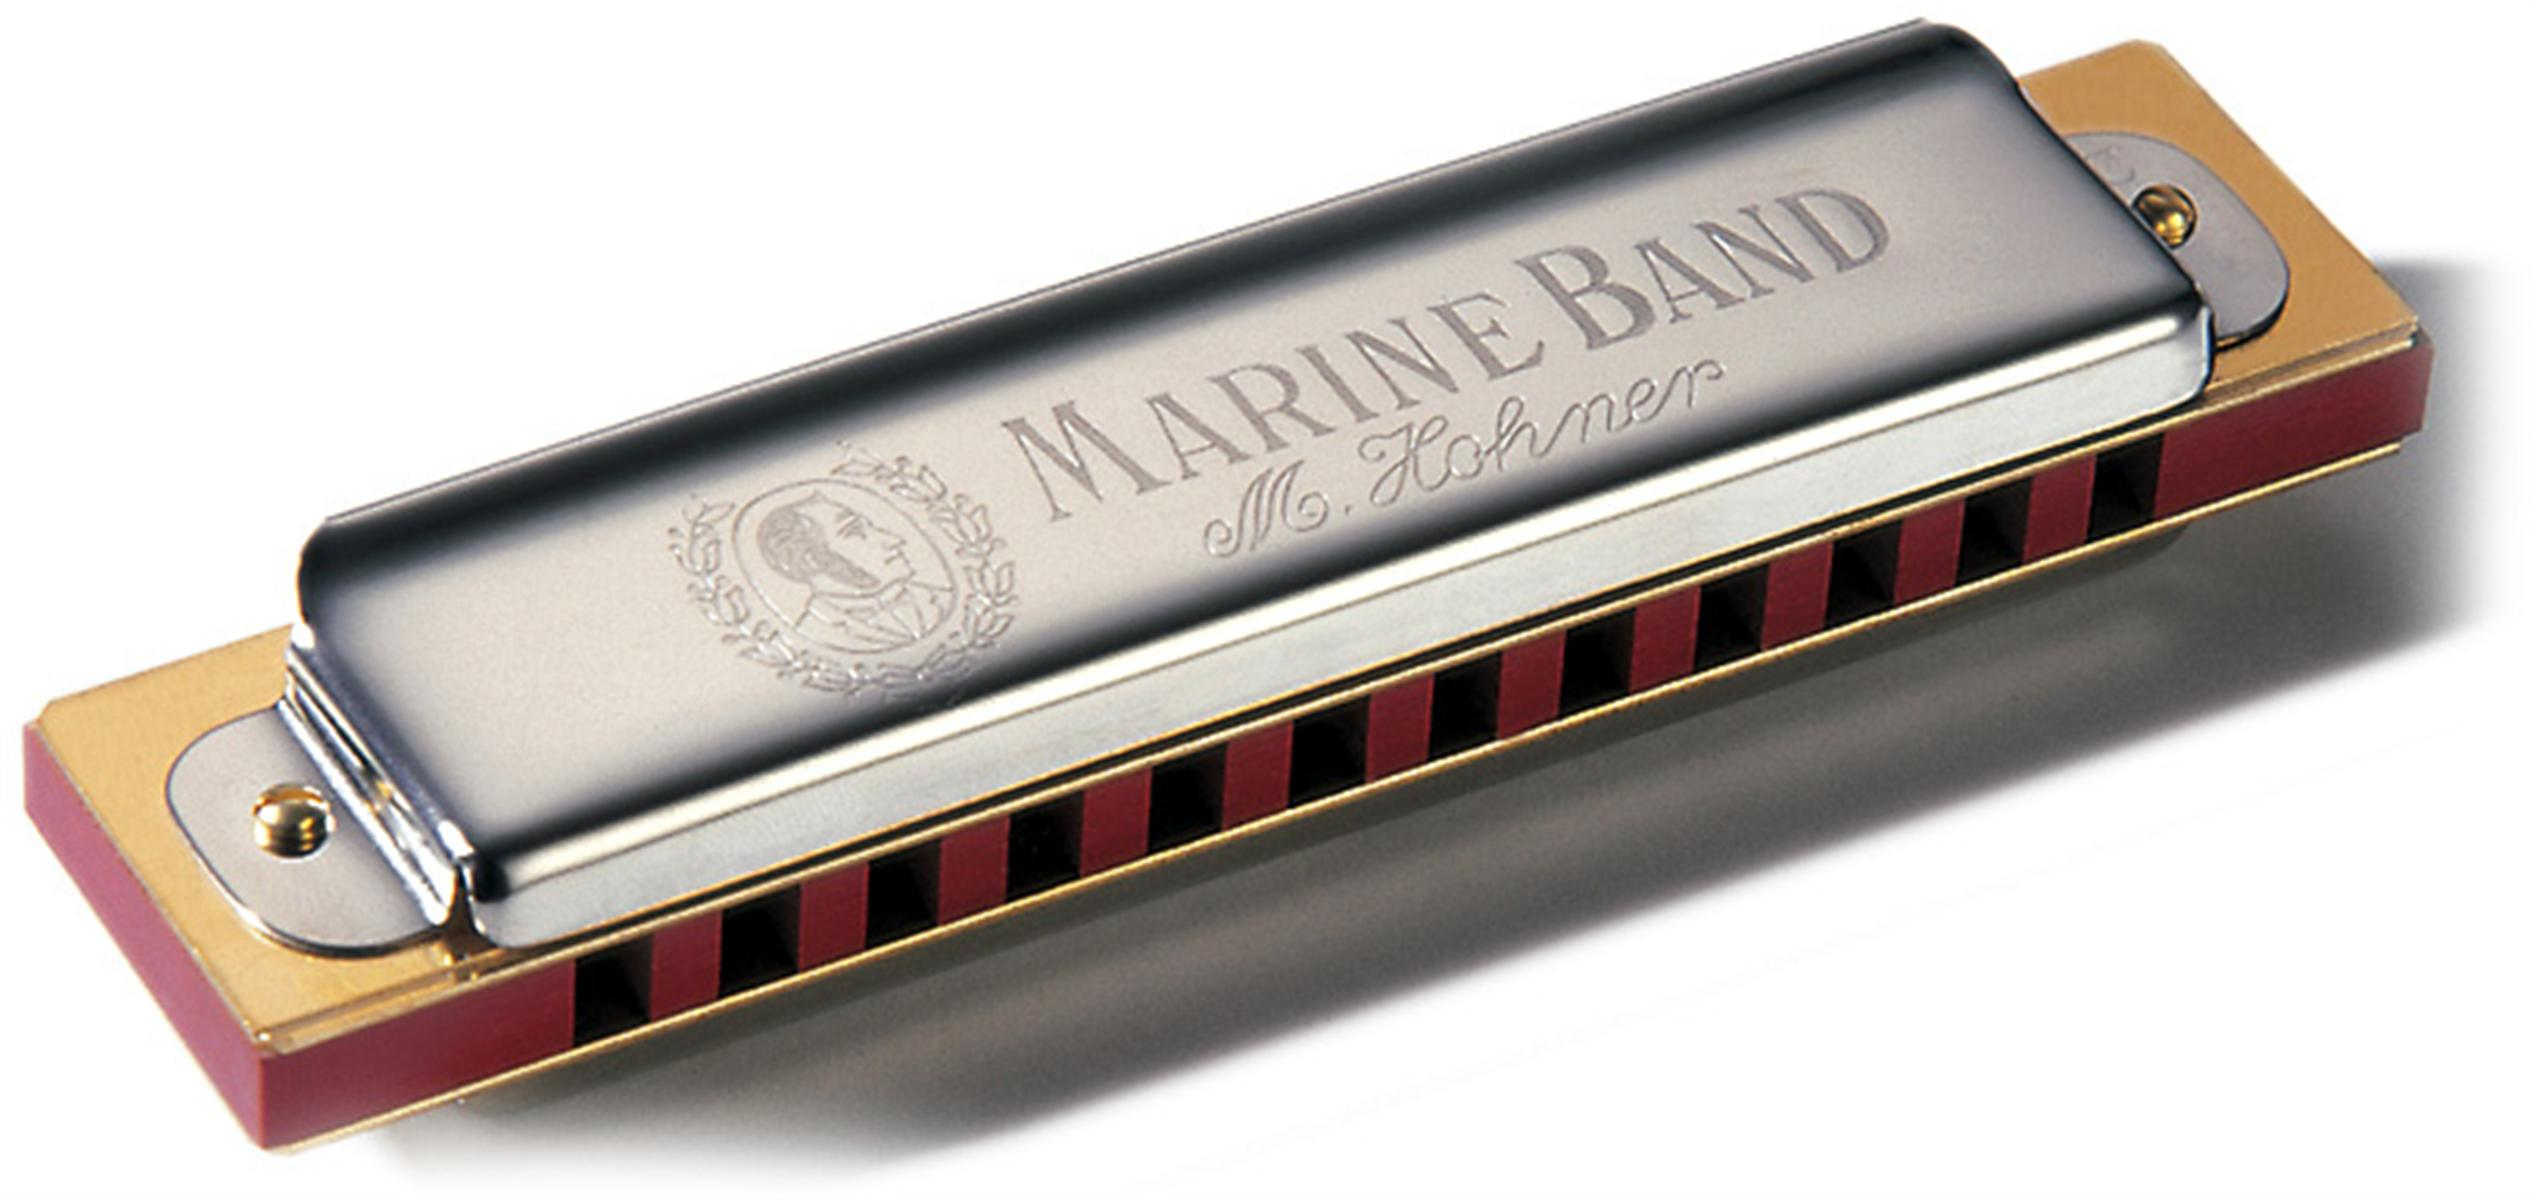 Hohner Marine Band Diatonic Harmonica - Key of G Major and more ...